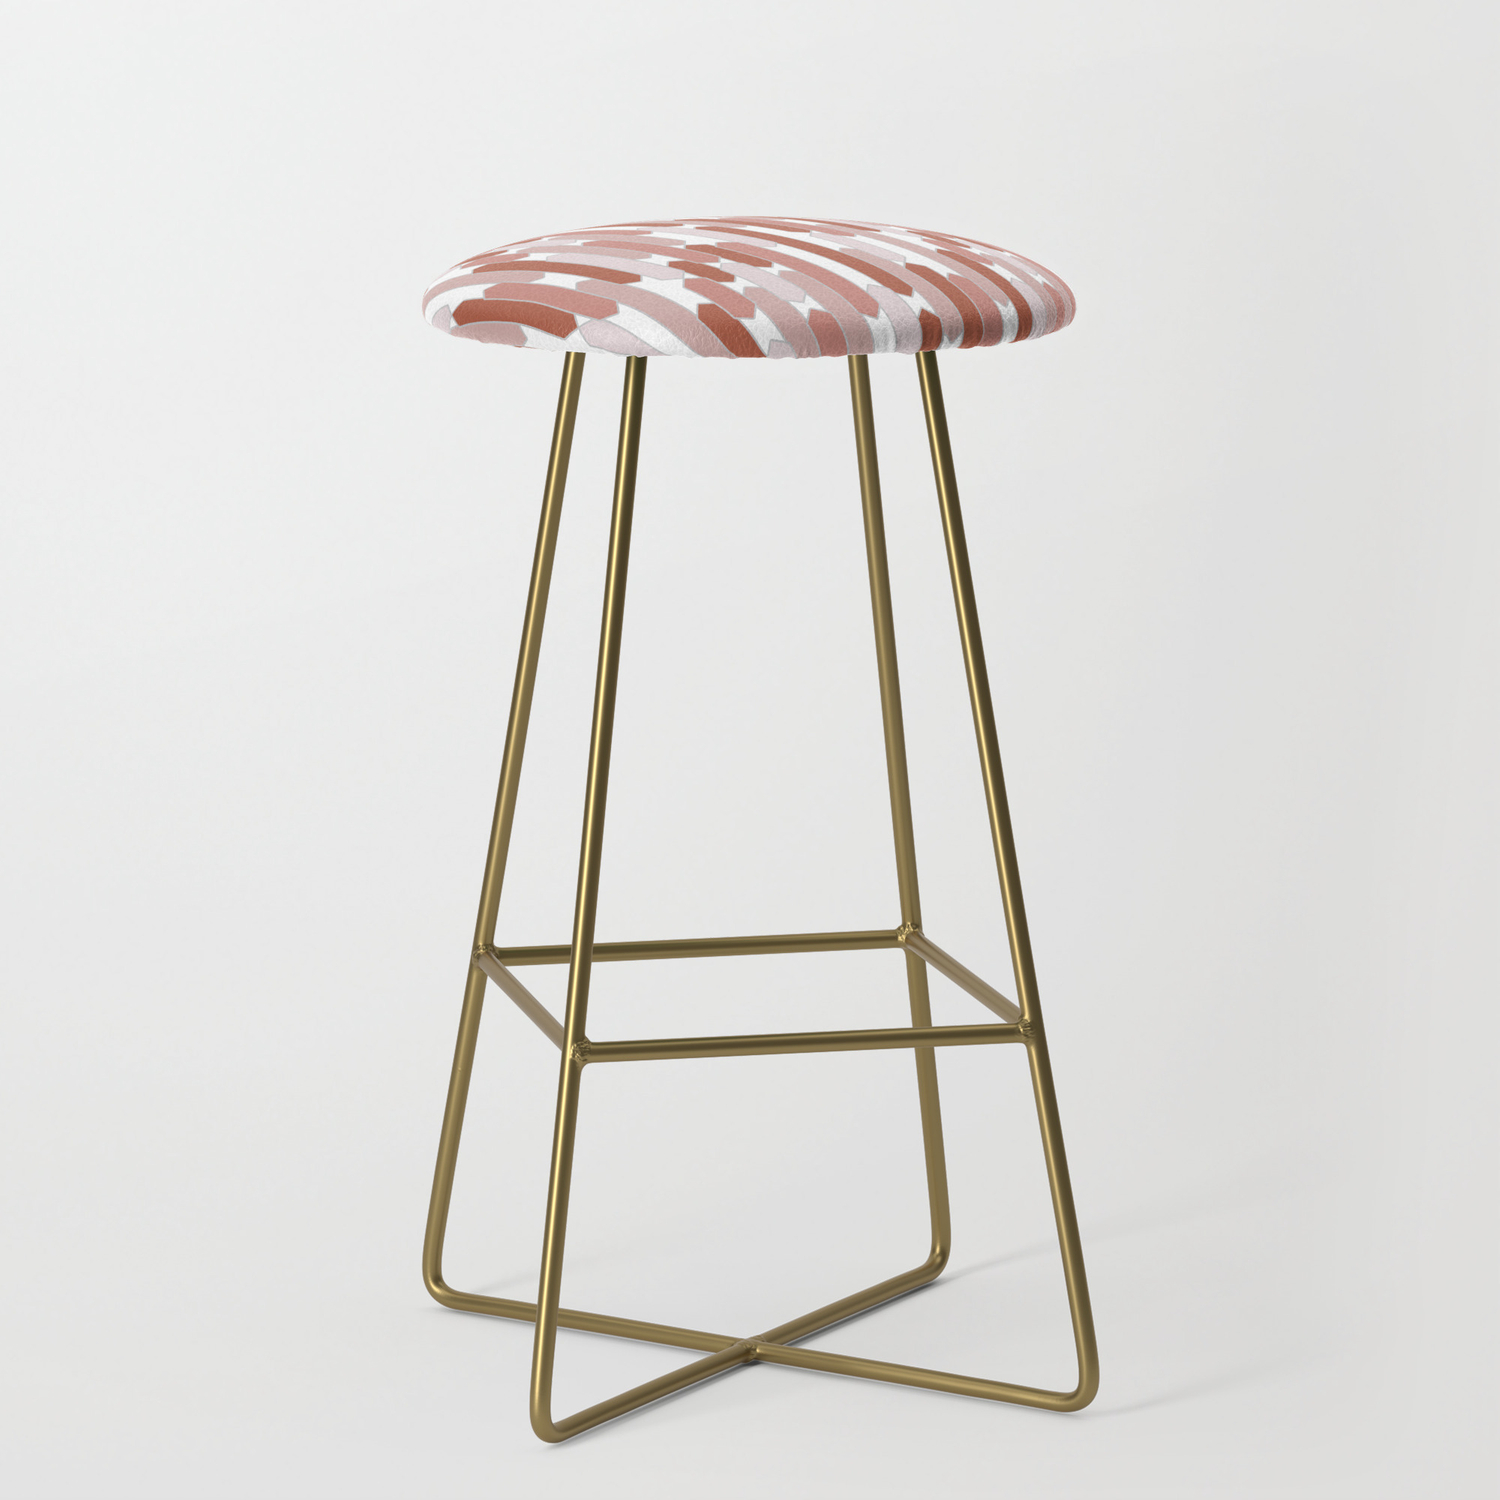 Image of: Modern Tabs In Terracotta On White Bar Stool By Fischerfinearts Society6